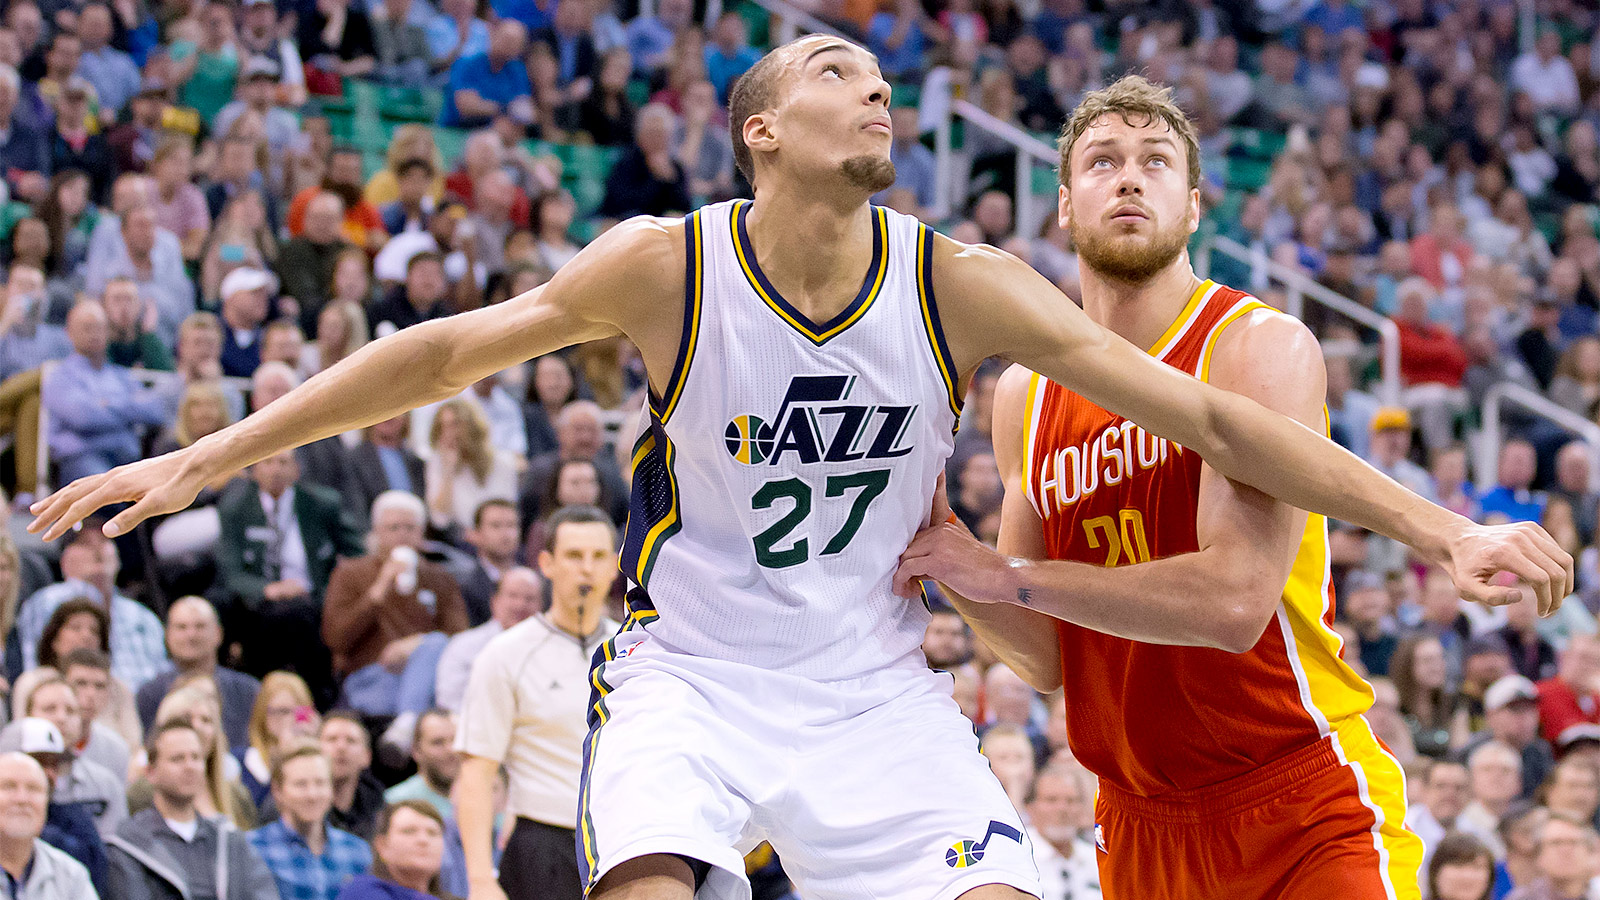 Jazz-Rockets Preview